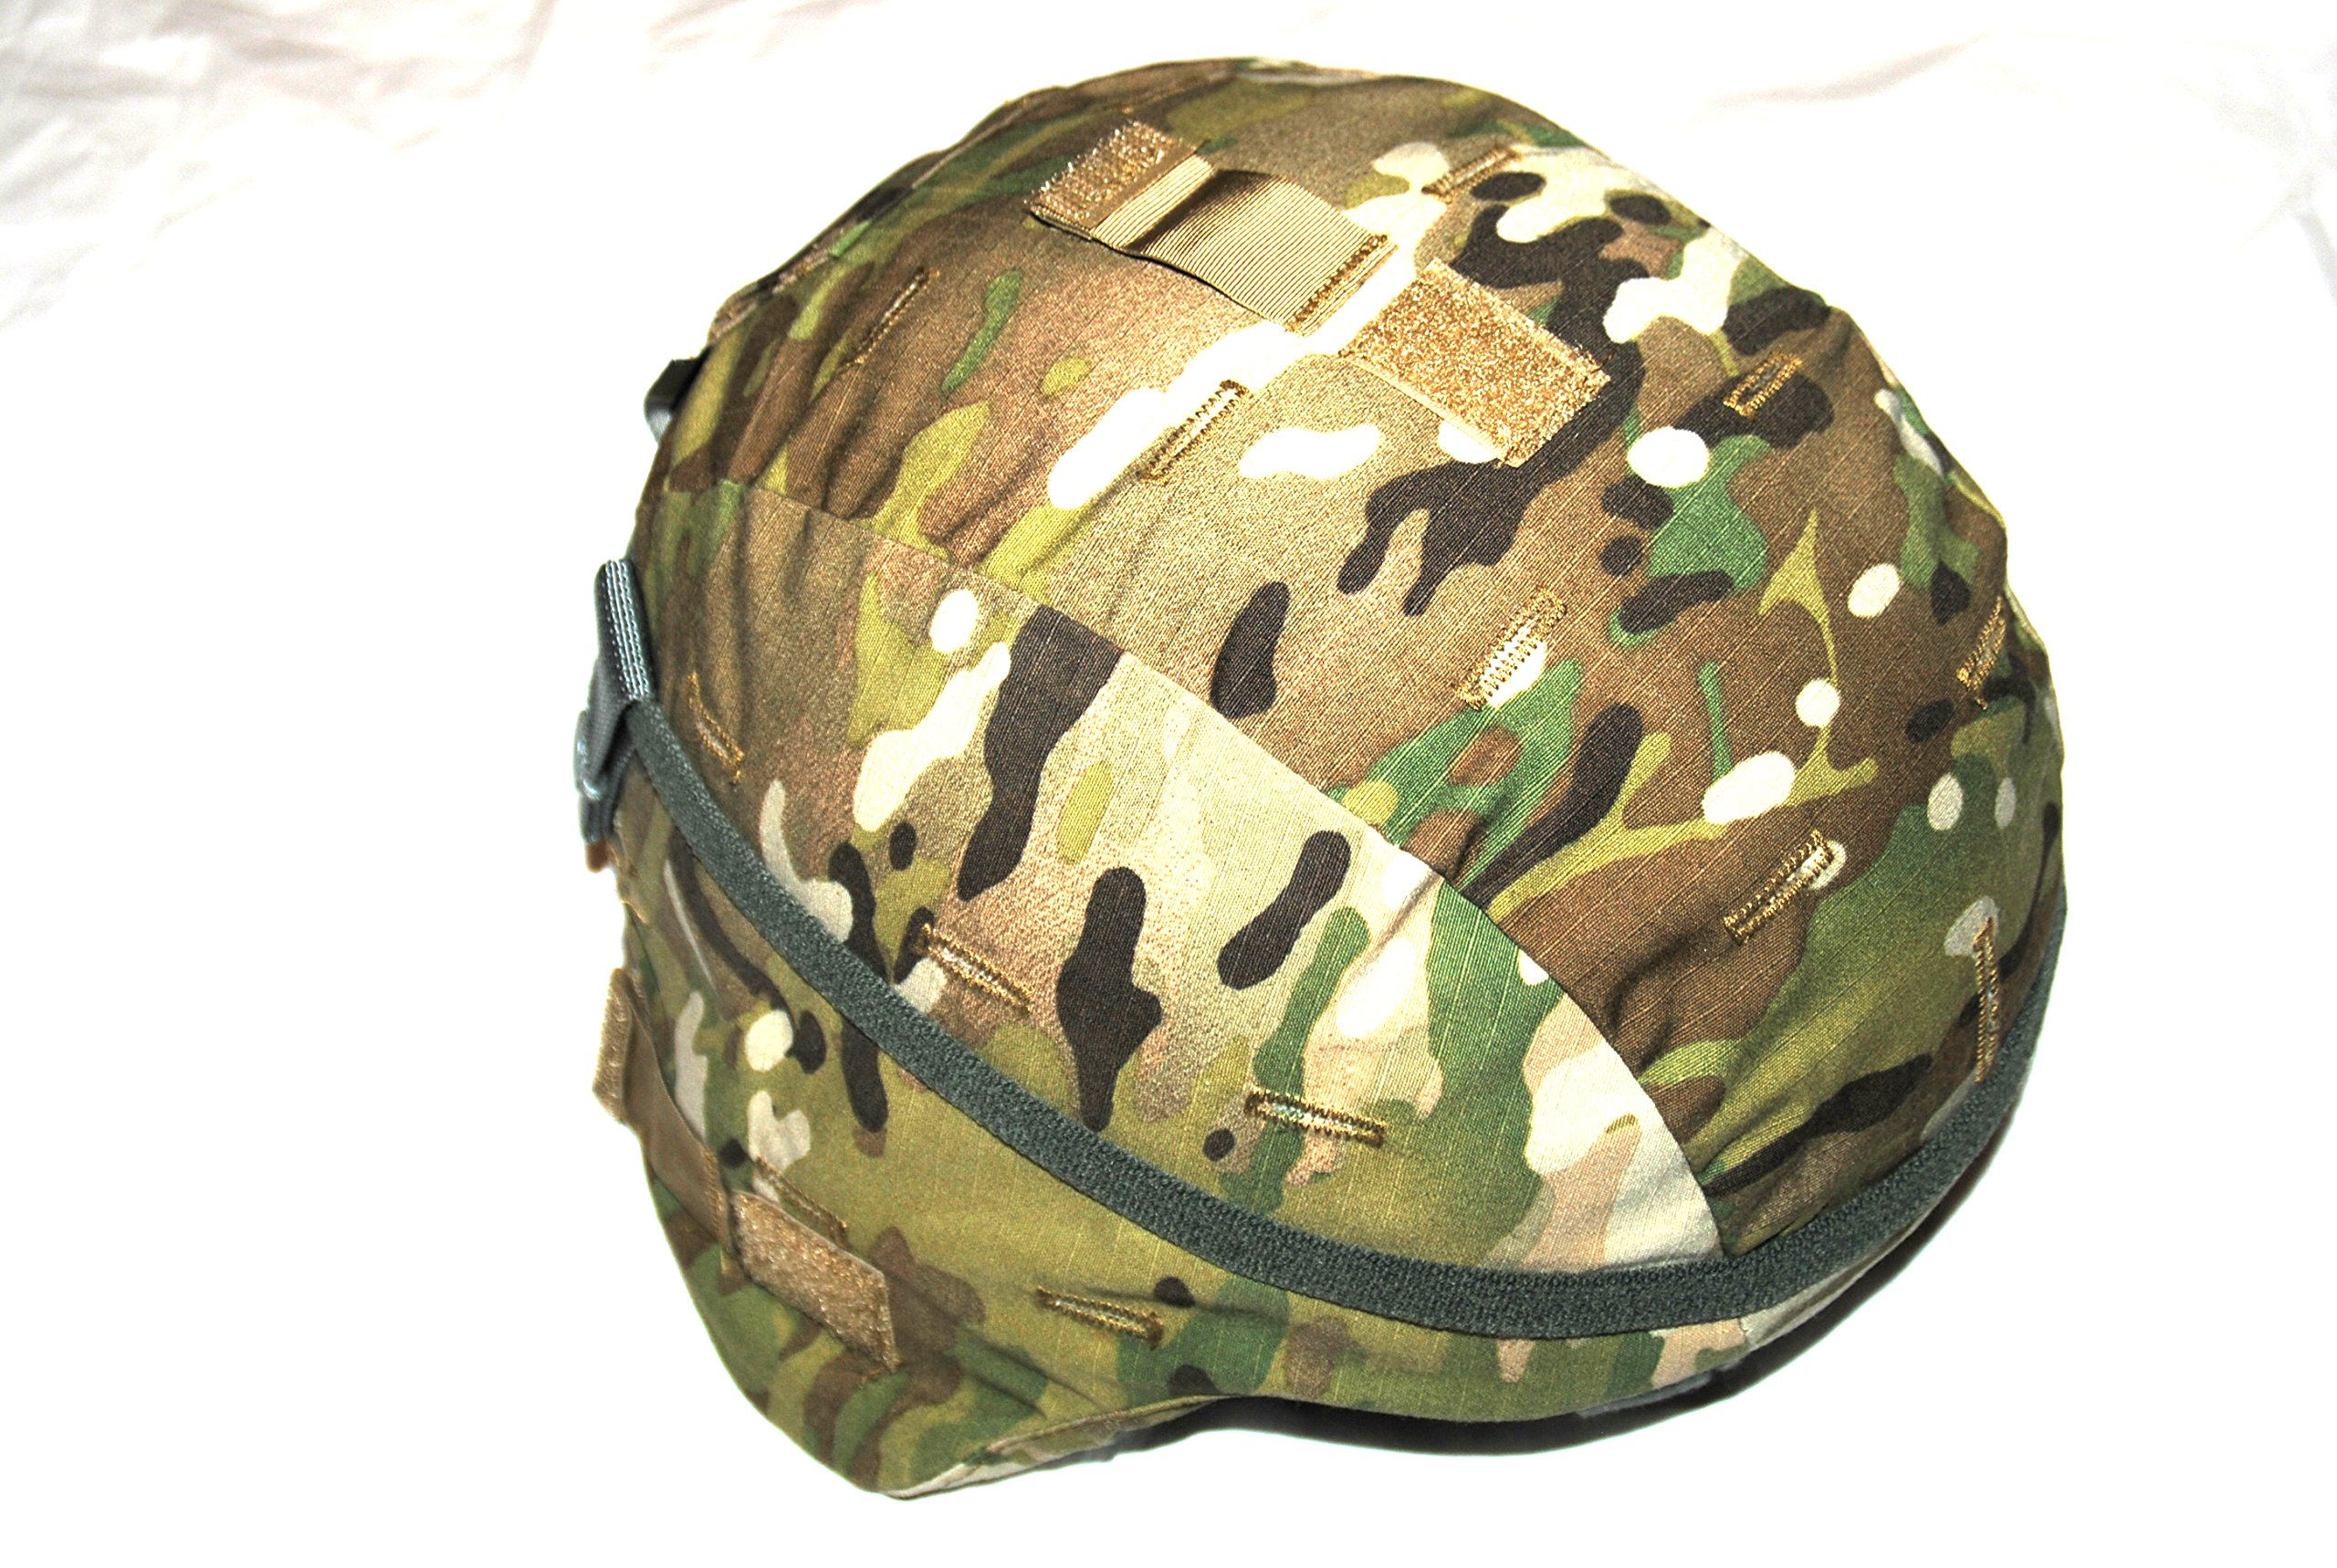 Genuine Us Military Ach Mich Helmet With Multicam Cover - Medium